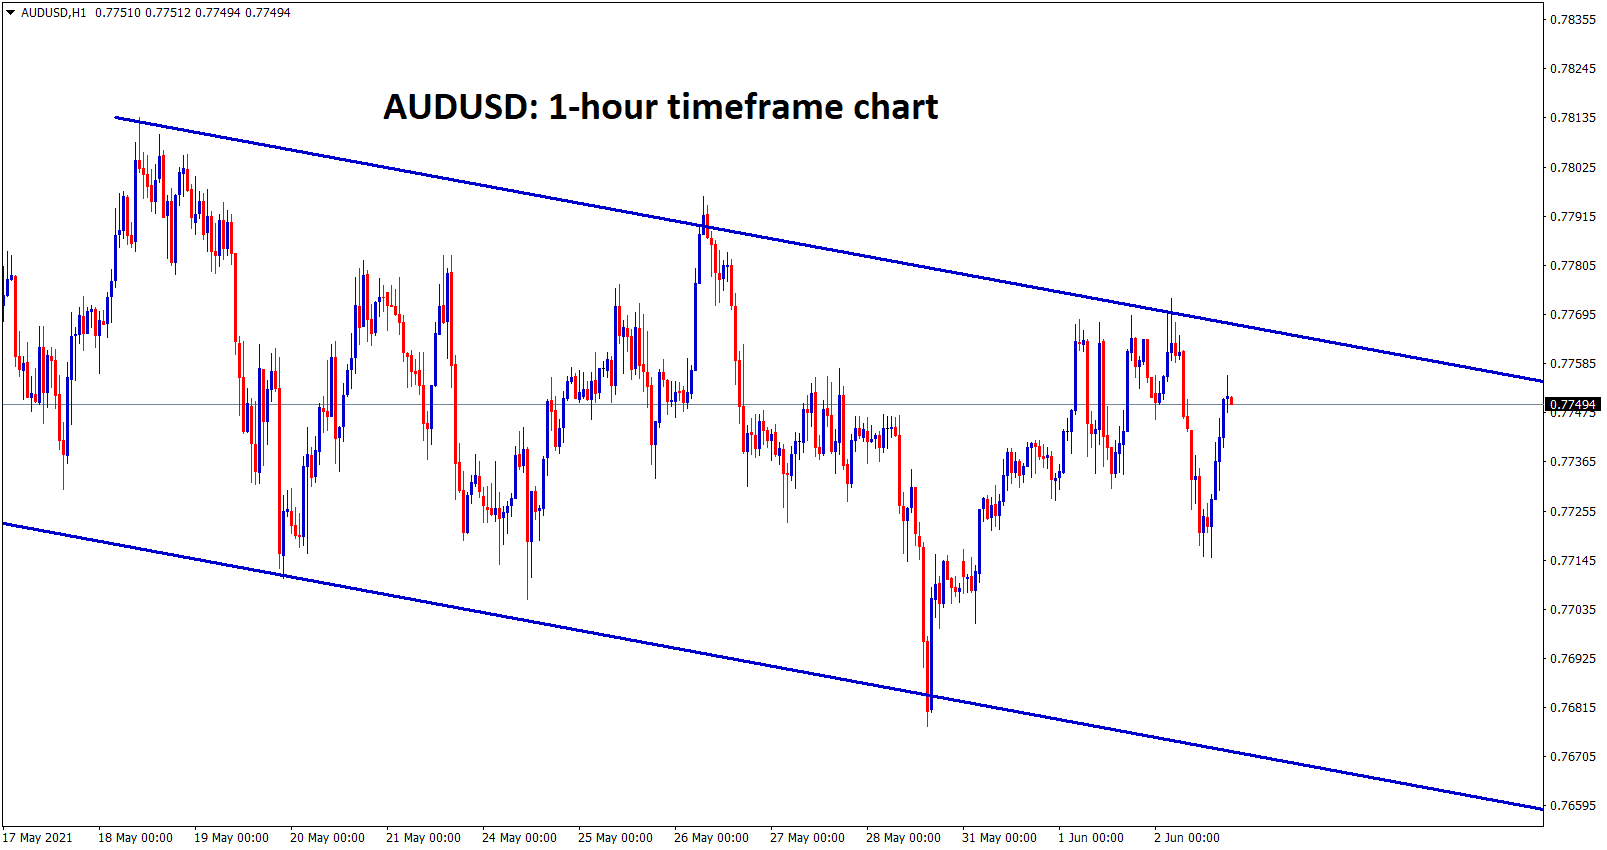 AUDUSD is moving in a descending channel forming lower highs and lower lows